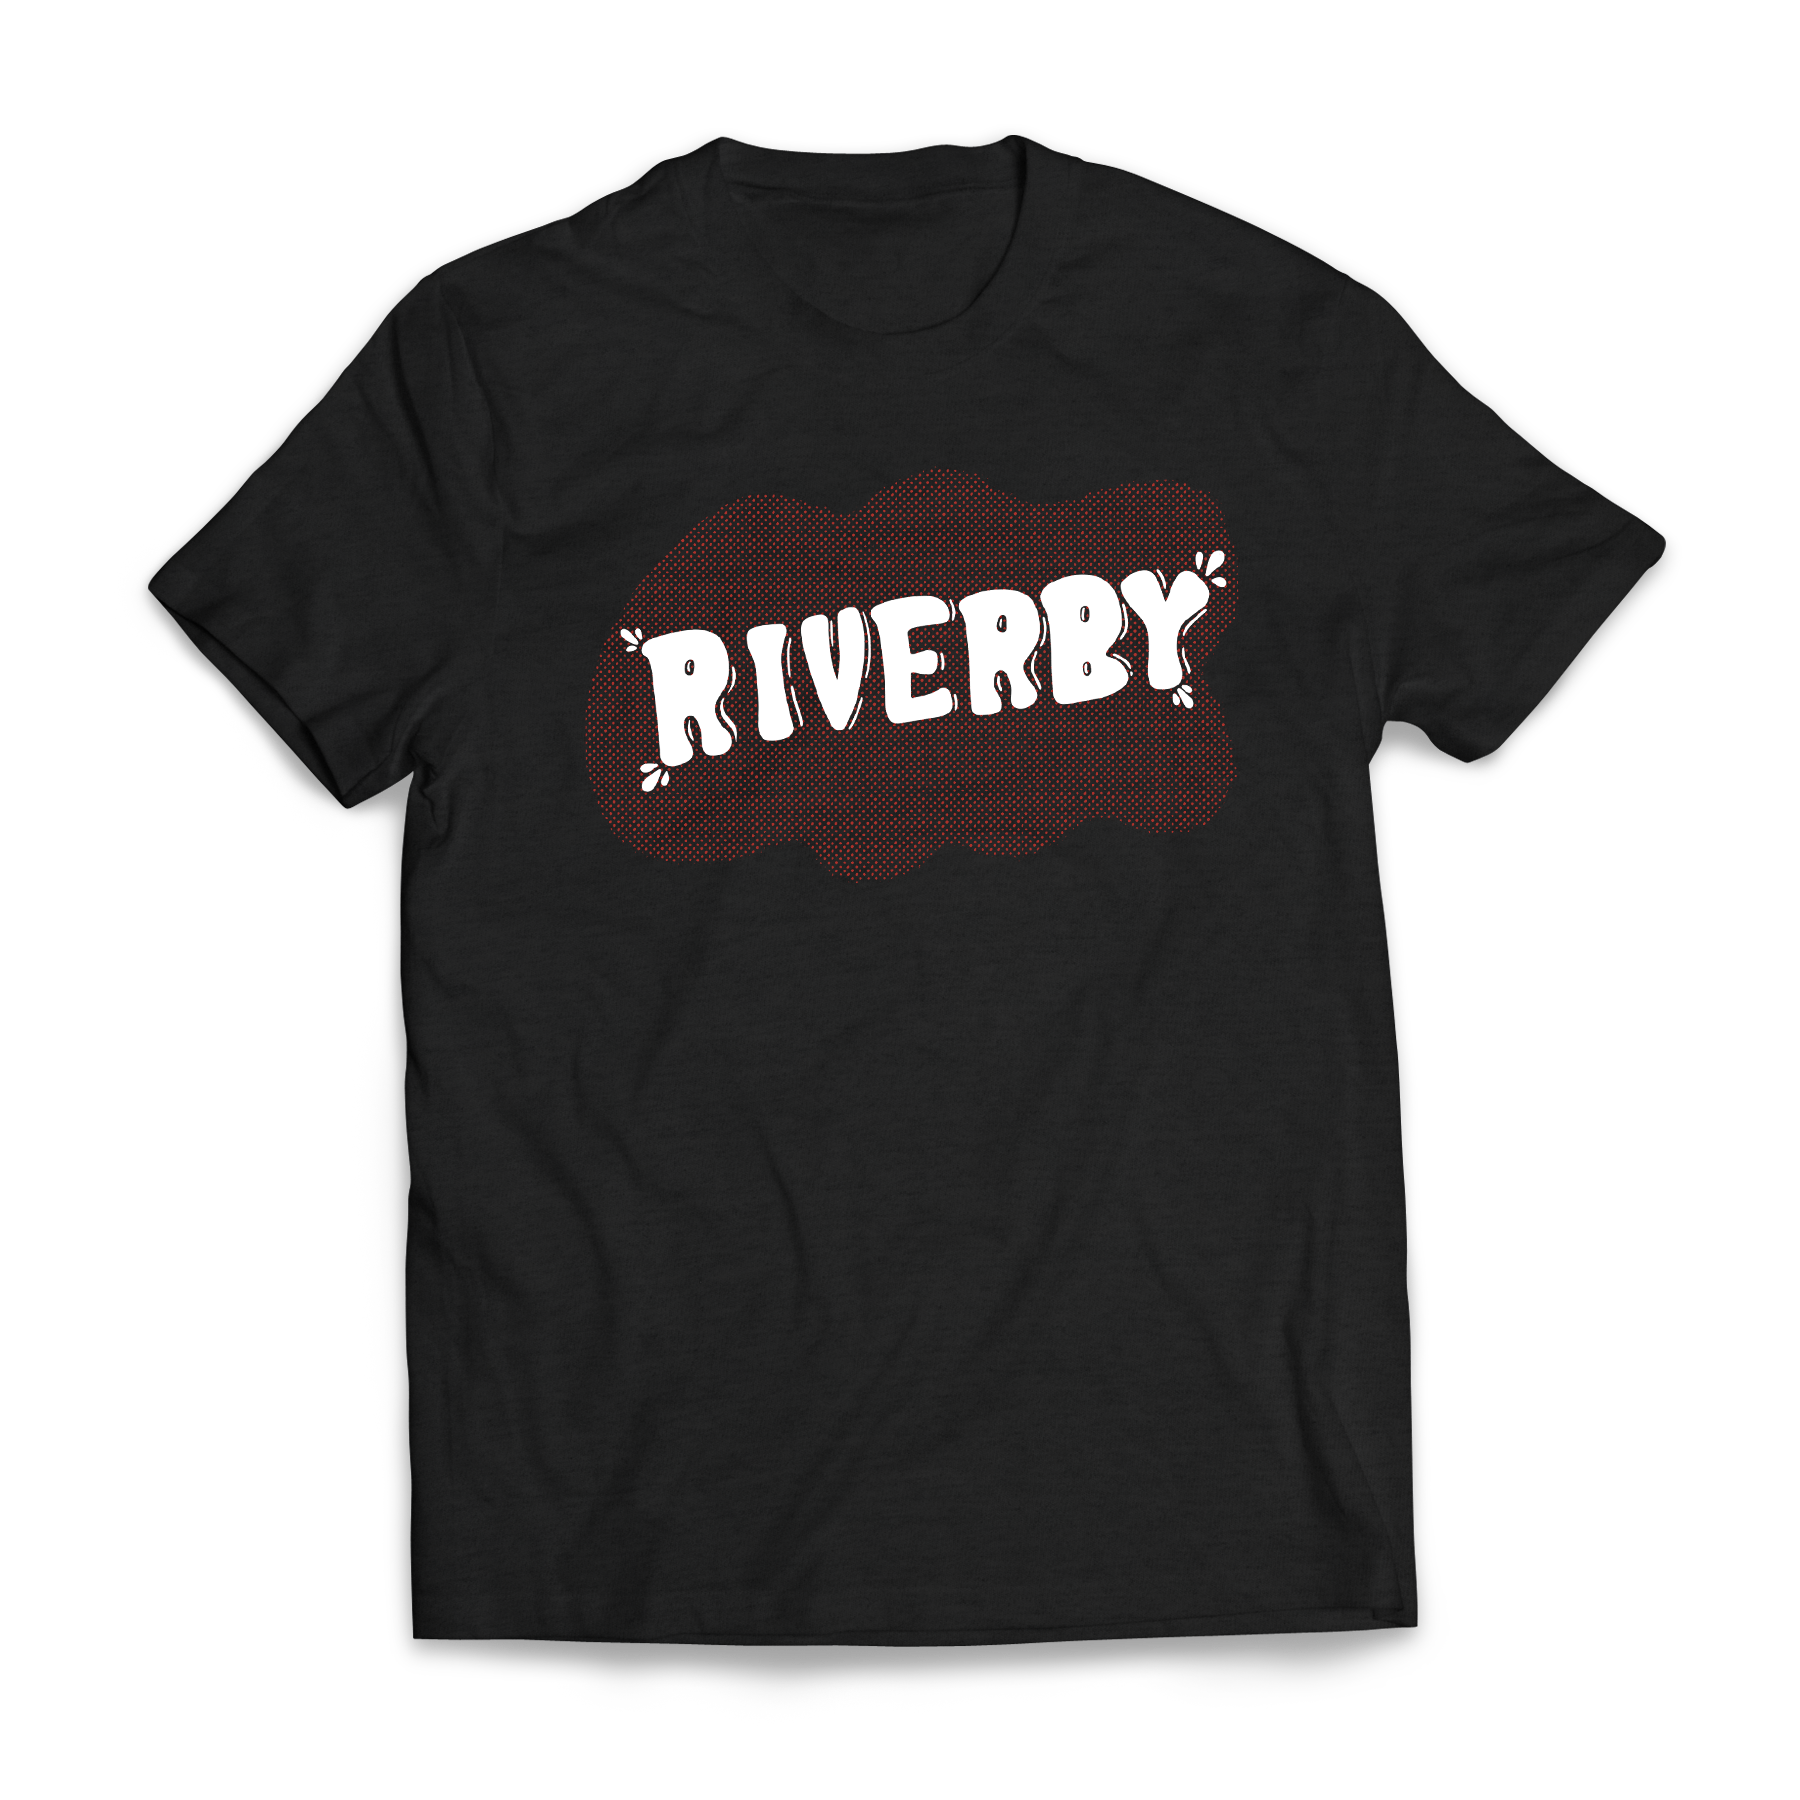 Riverby -